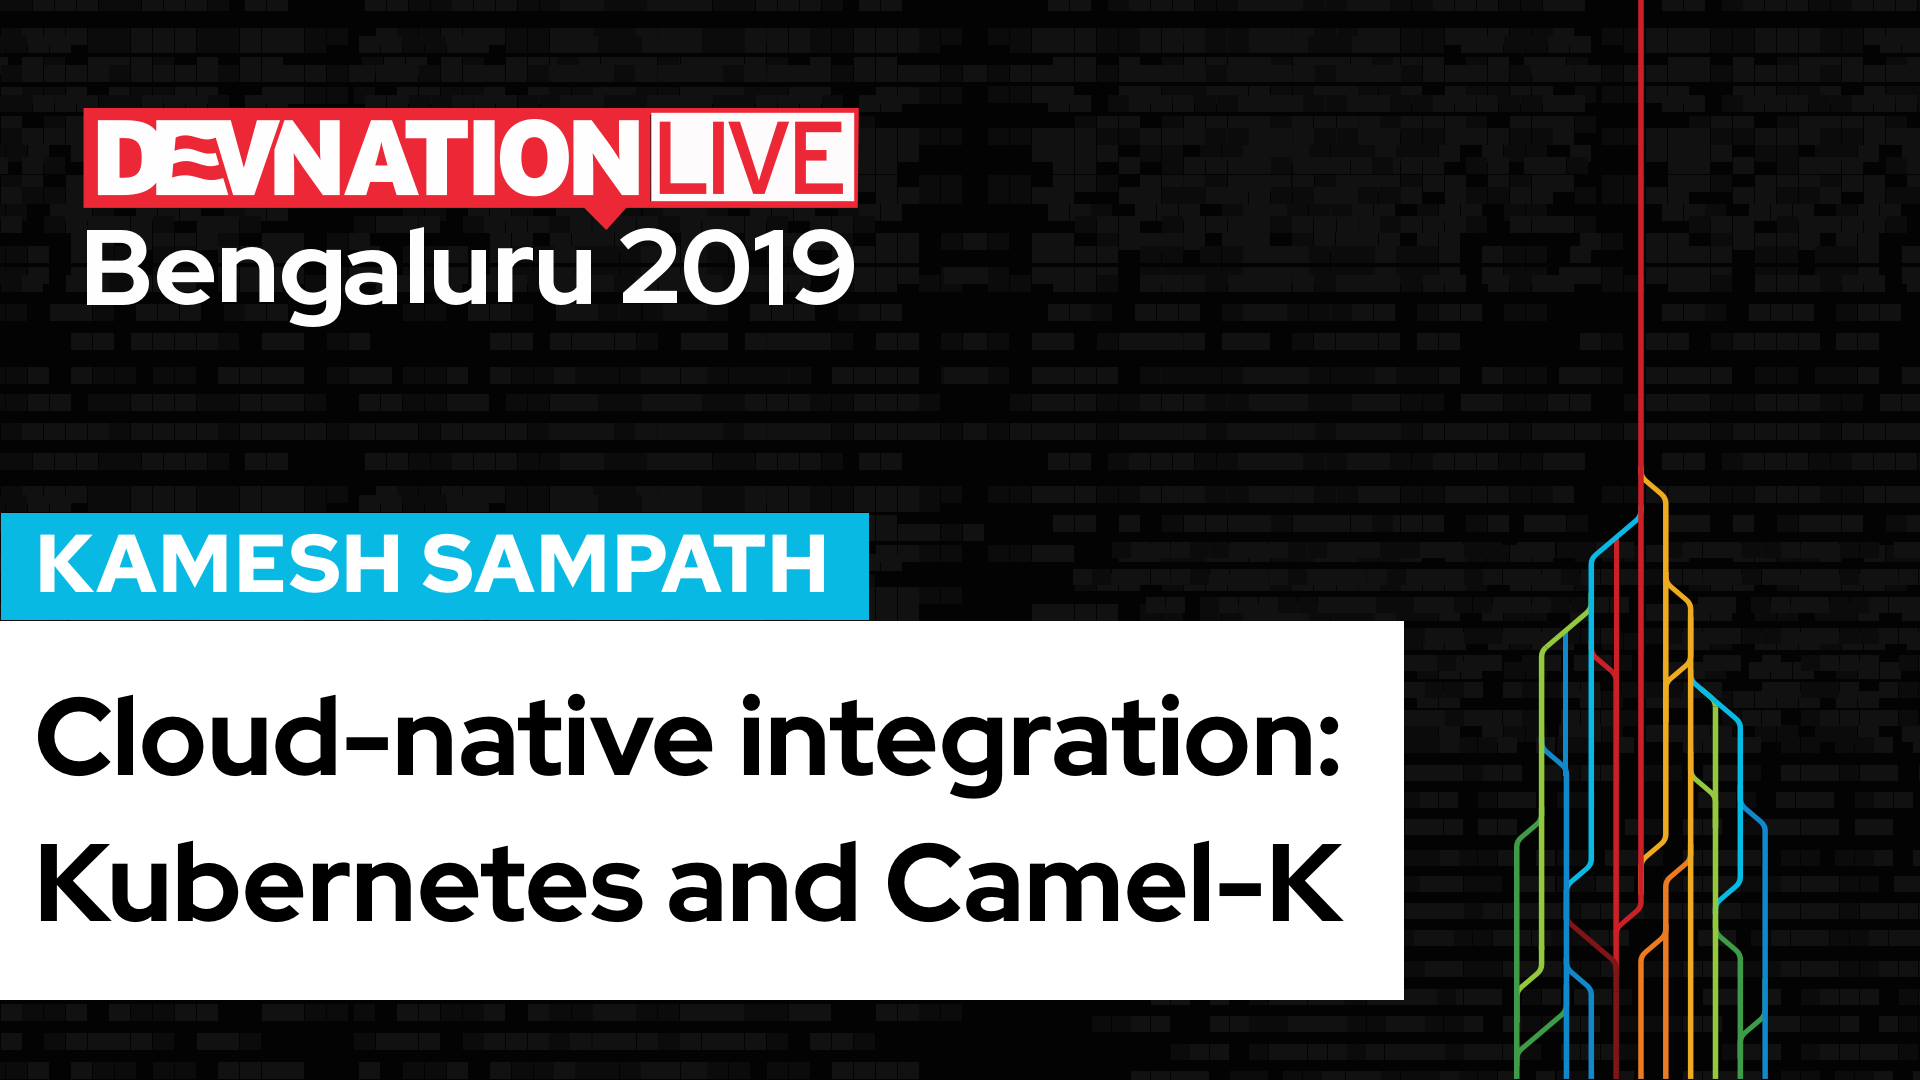 Cloud-native integration with Kubernetes and Camel K